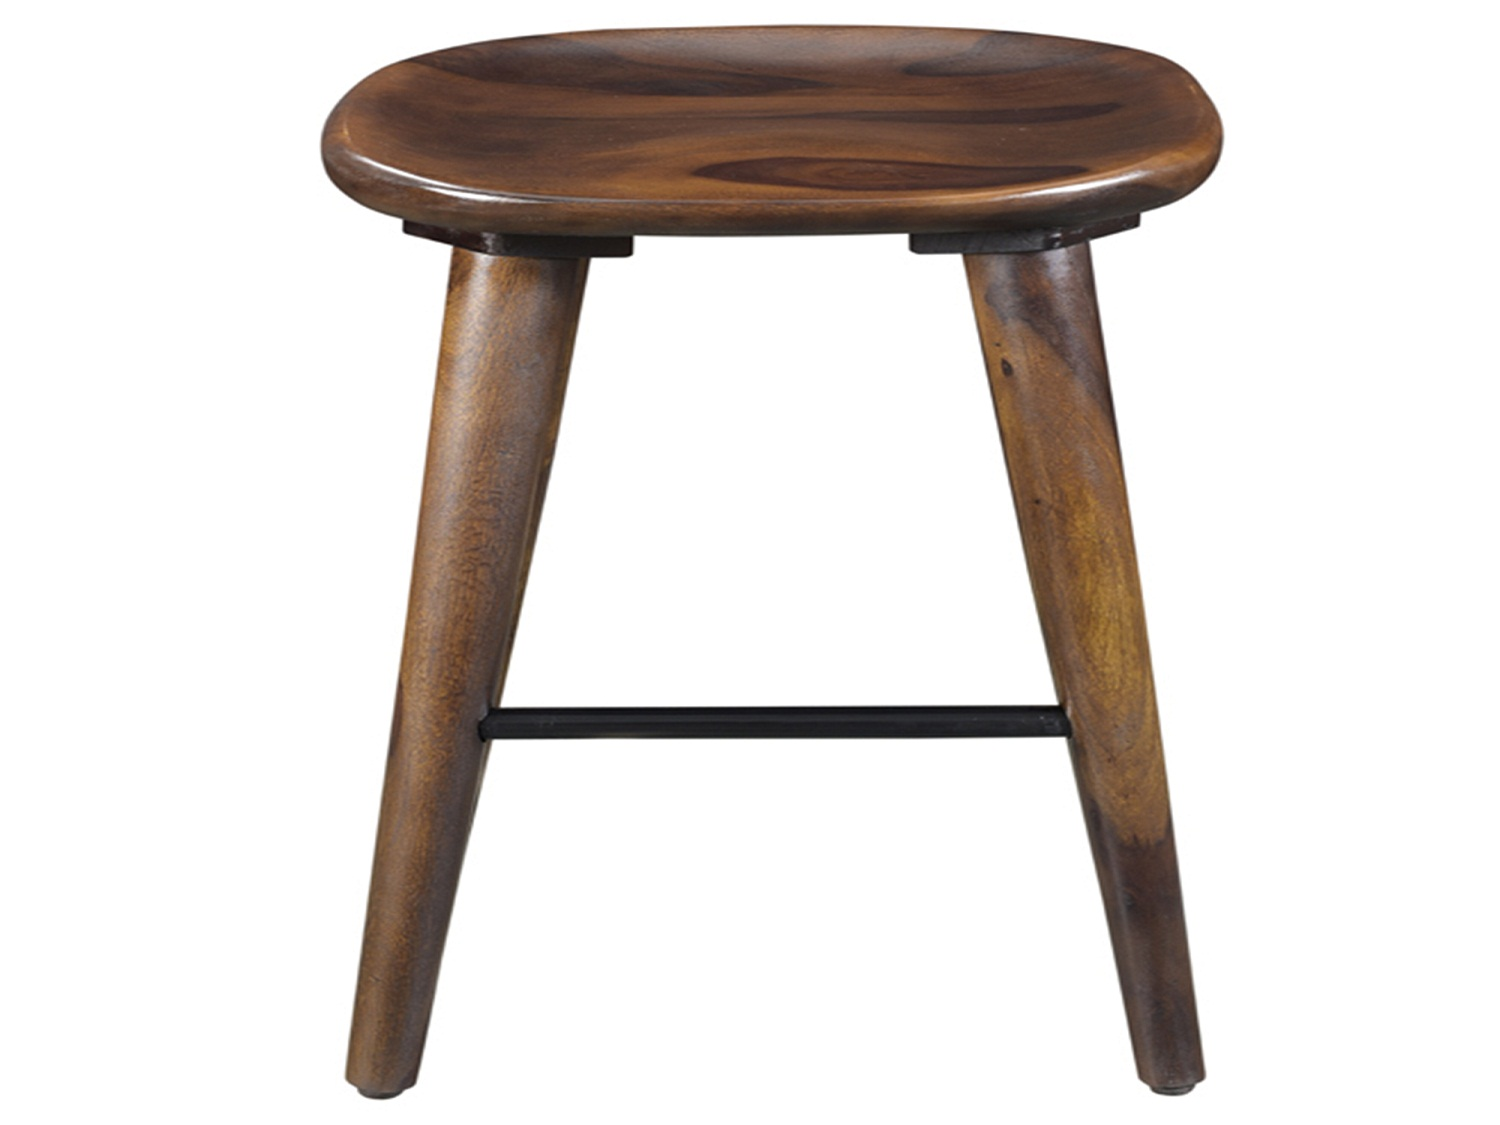 TAHOE-26.., 841173024154, Bar Stools by Midha Furniture to Brampton, Mississauga, Etobicoke, Toronto, Scraborough, Caledon, Oakville, Markham, Ajax, Pickering, Oshawa, Richmondhill, Kitchener, Hamilton and GTA area